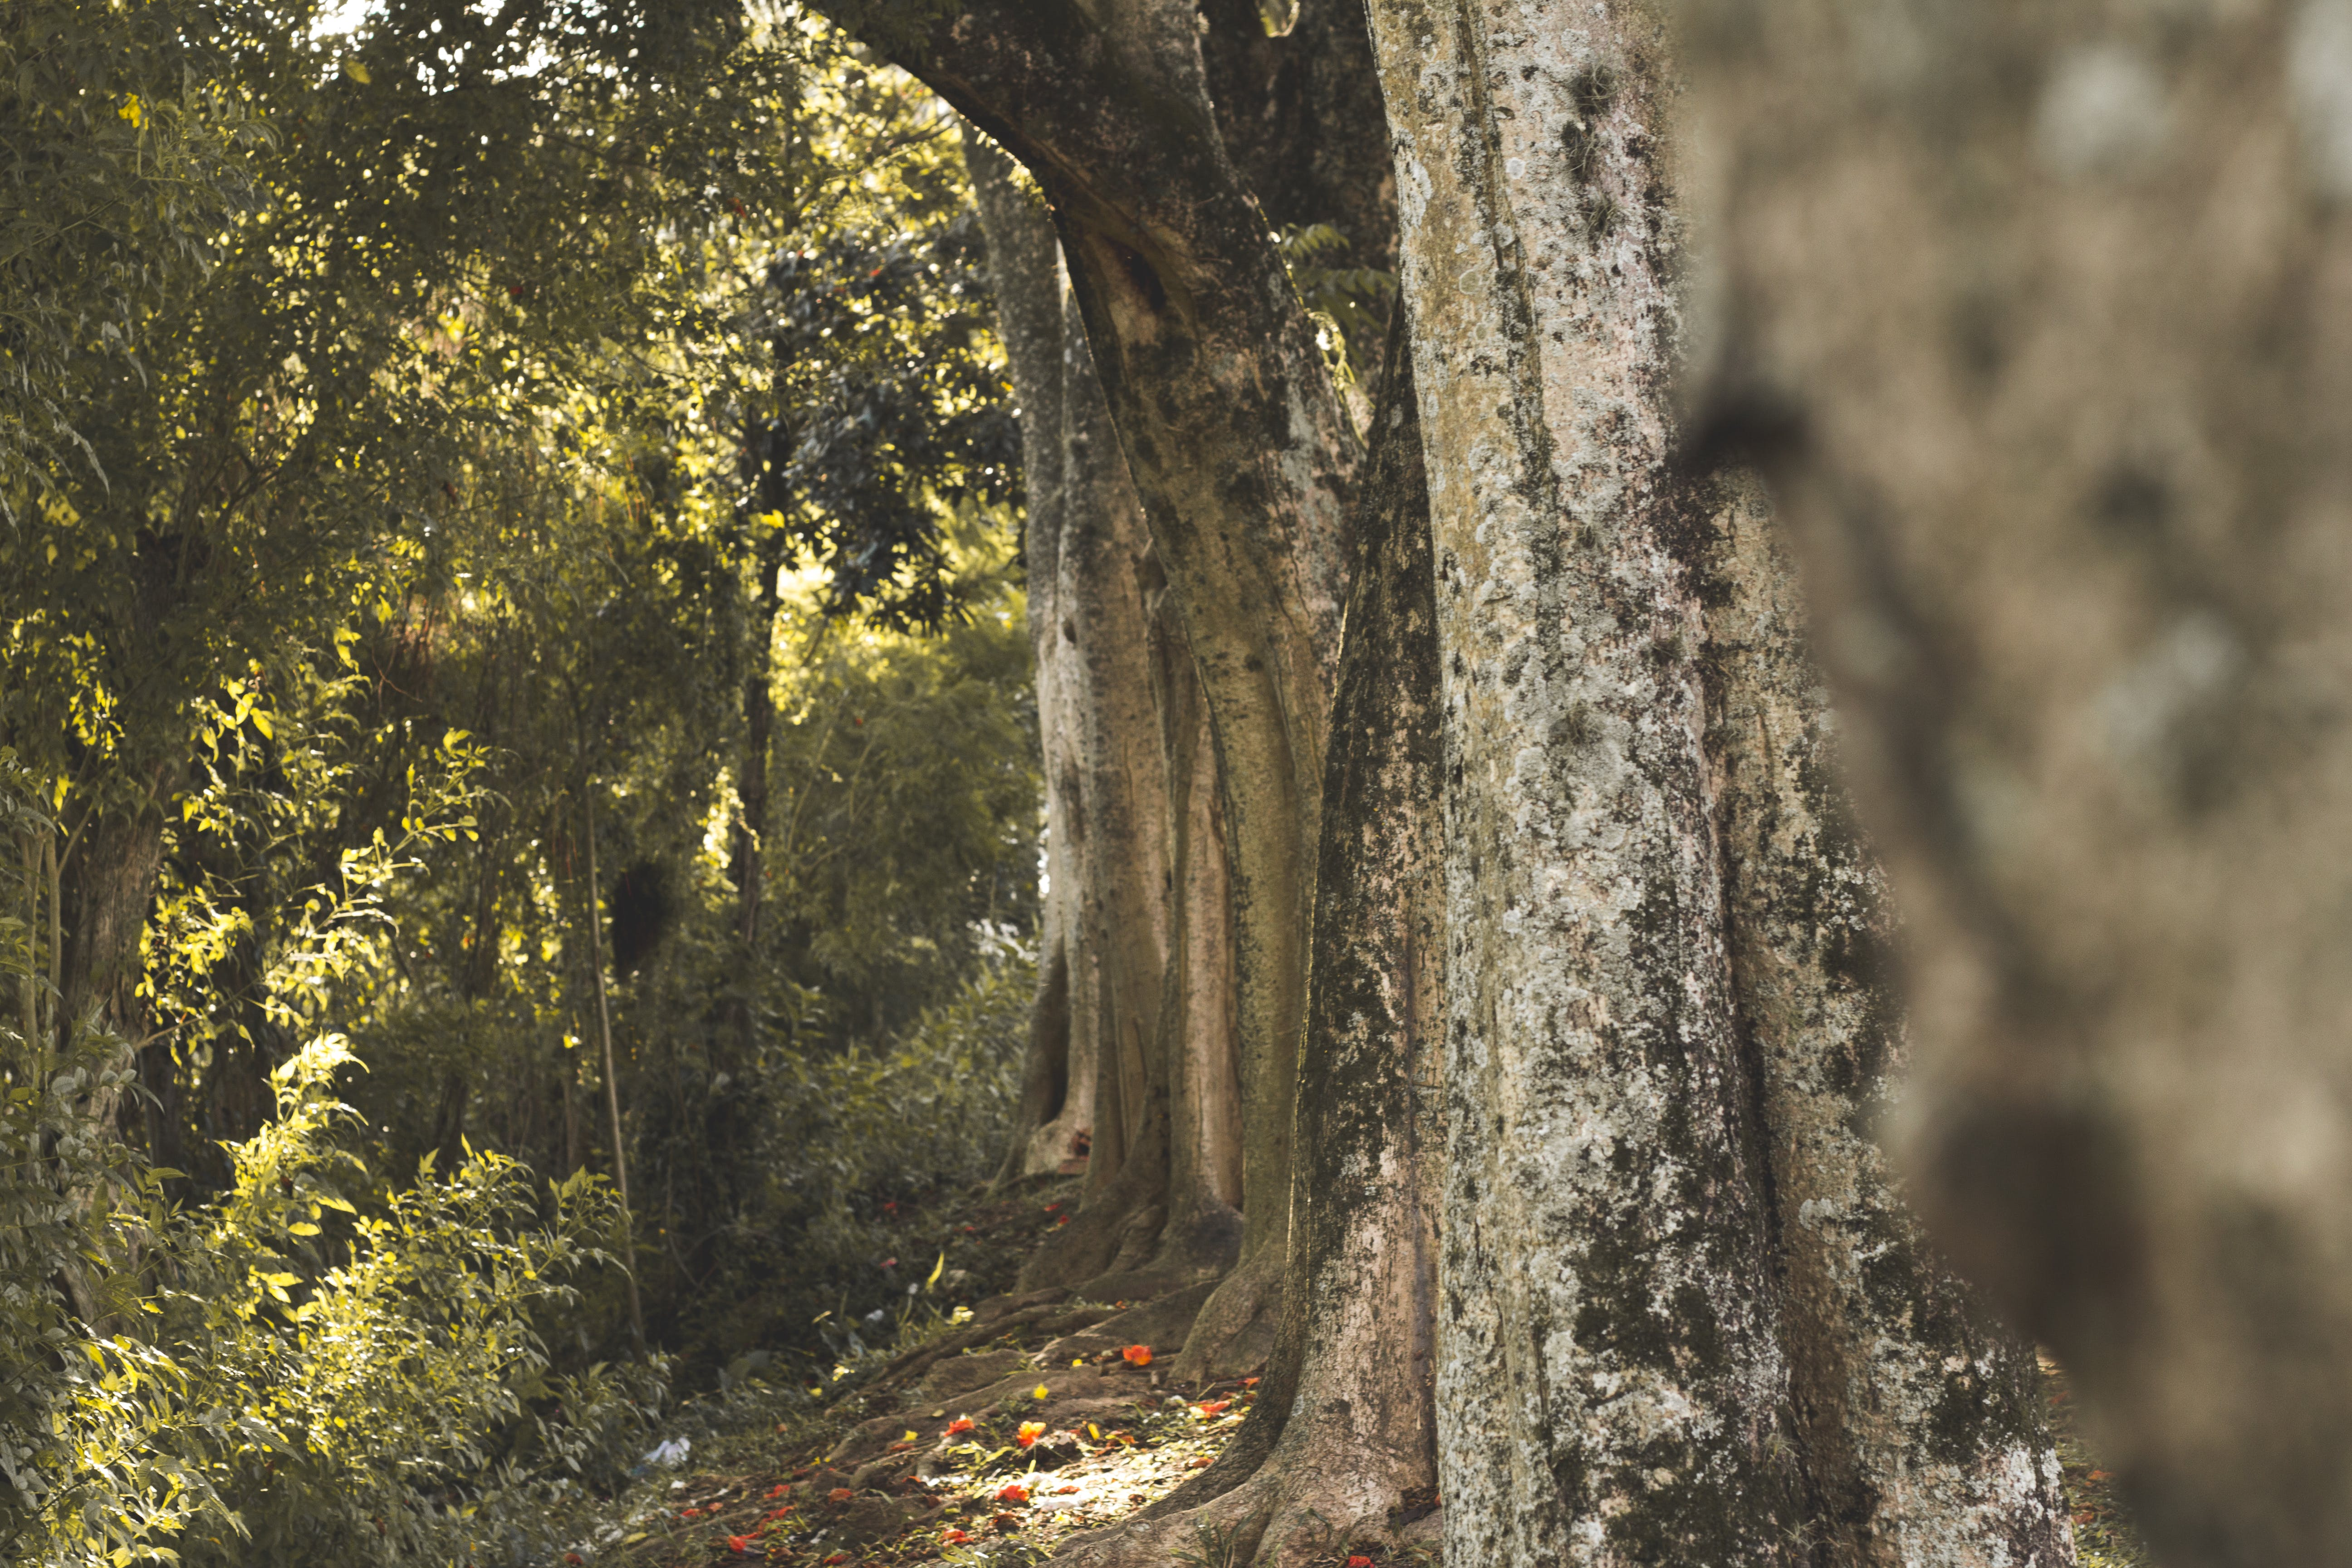 Free stock photo of nature, trunk, tree, tree trunk